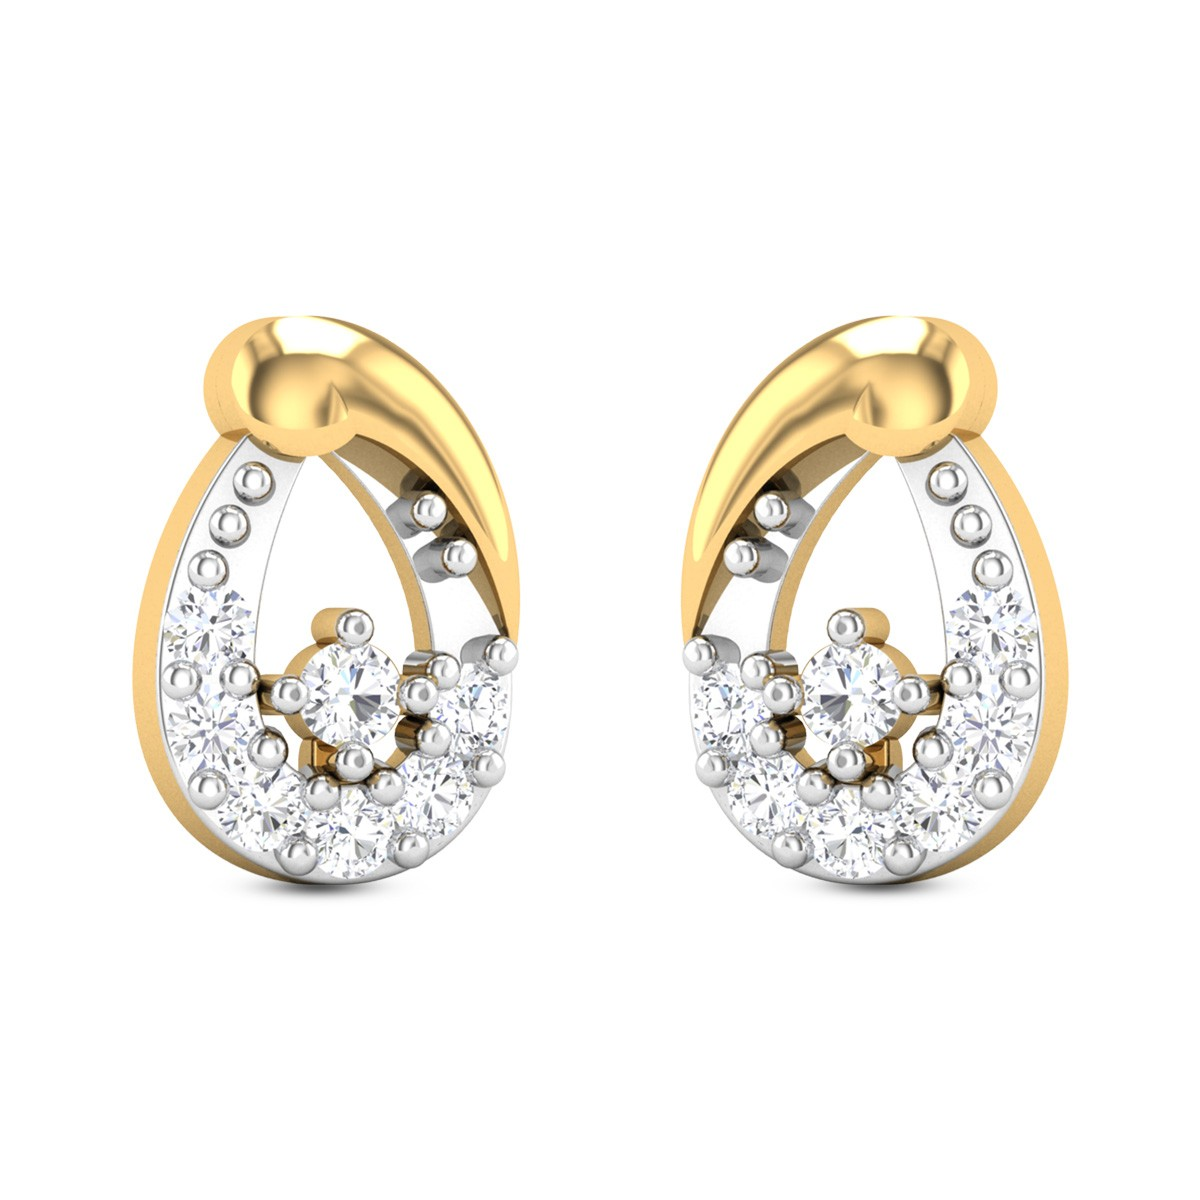 Tamara Diamond Earrings